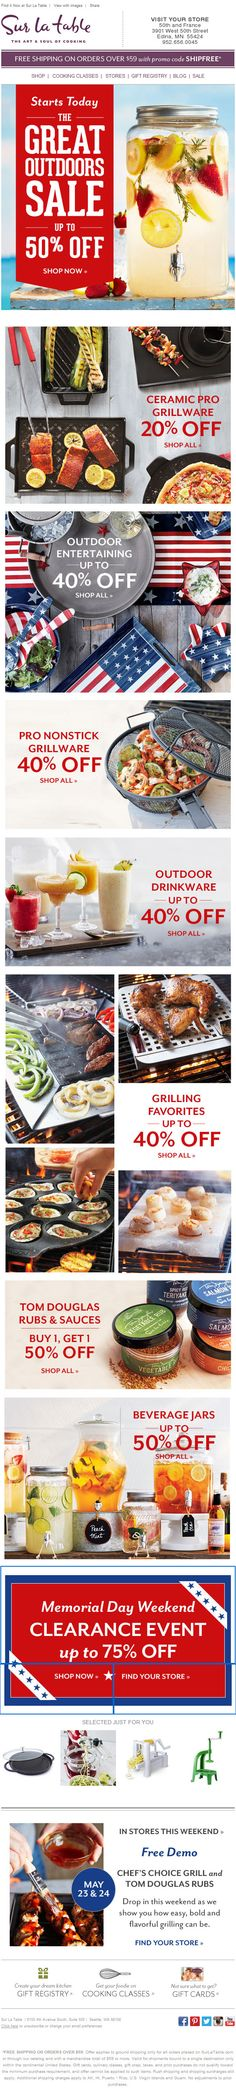 home depot memorial day sale 2013 ad